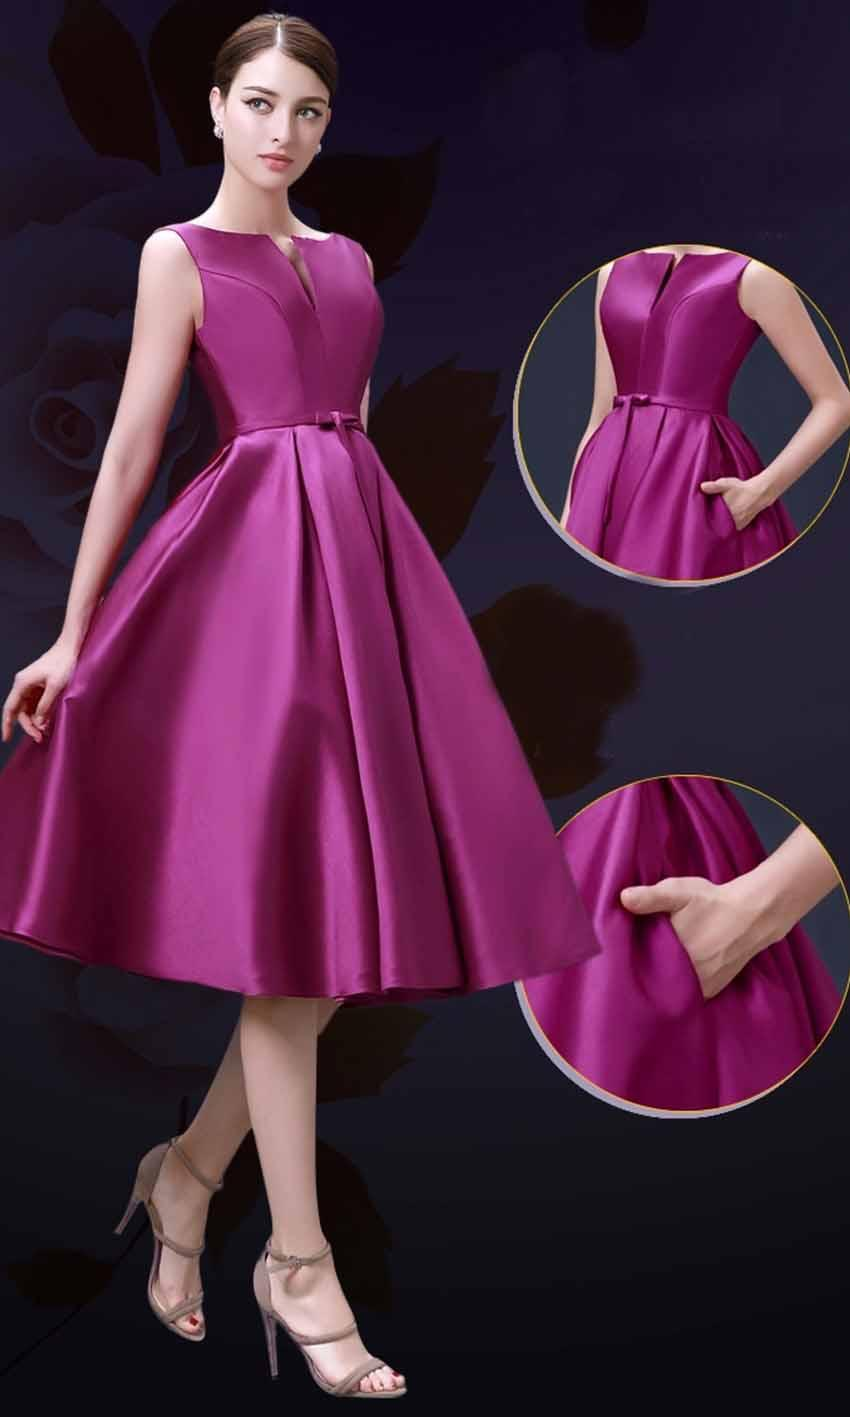 Elegance Slash Pocket Mid Length Formal Bridesmaid Dresses Ksp357 94 00 Prom Uk 2017 Evening